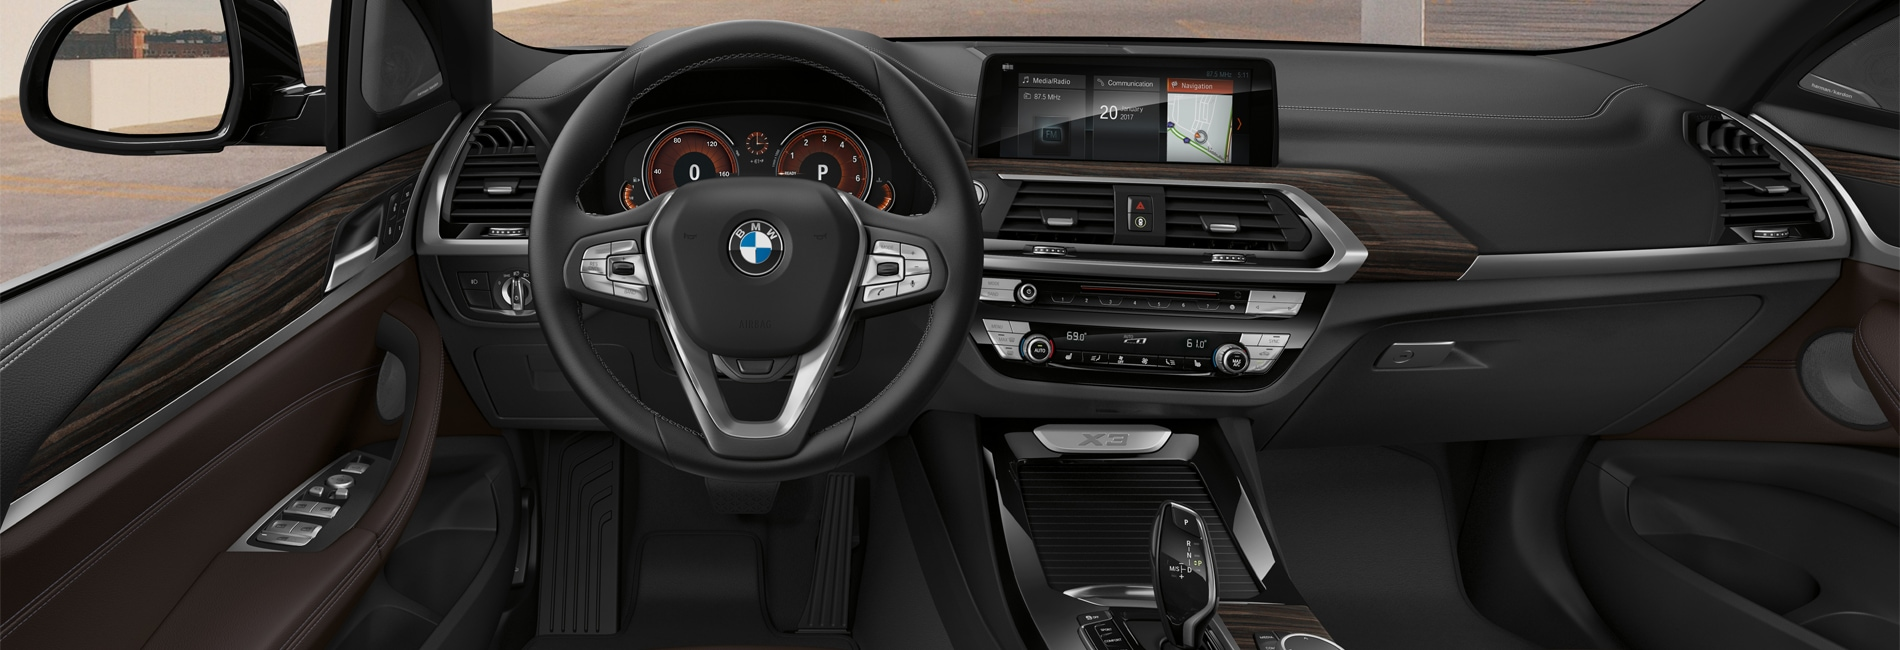 2019 BMW X3 Interior Features